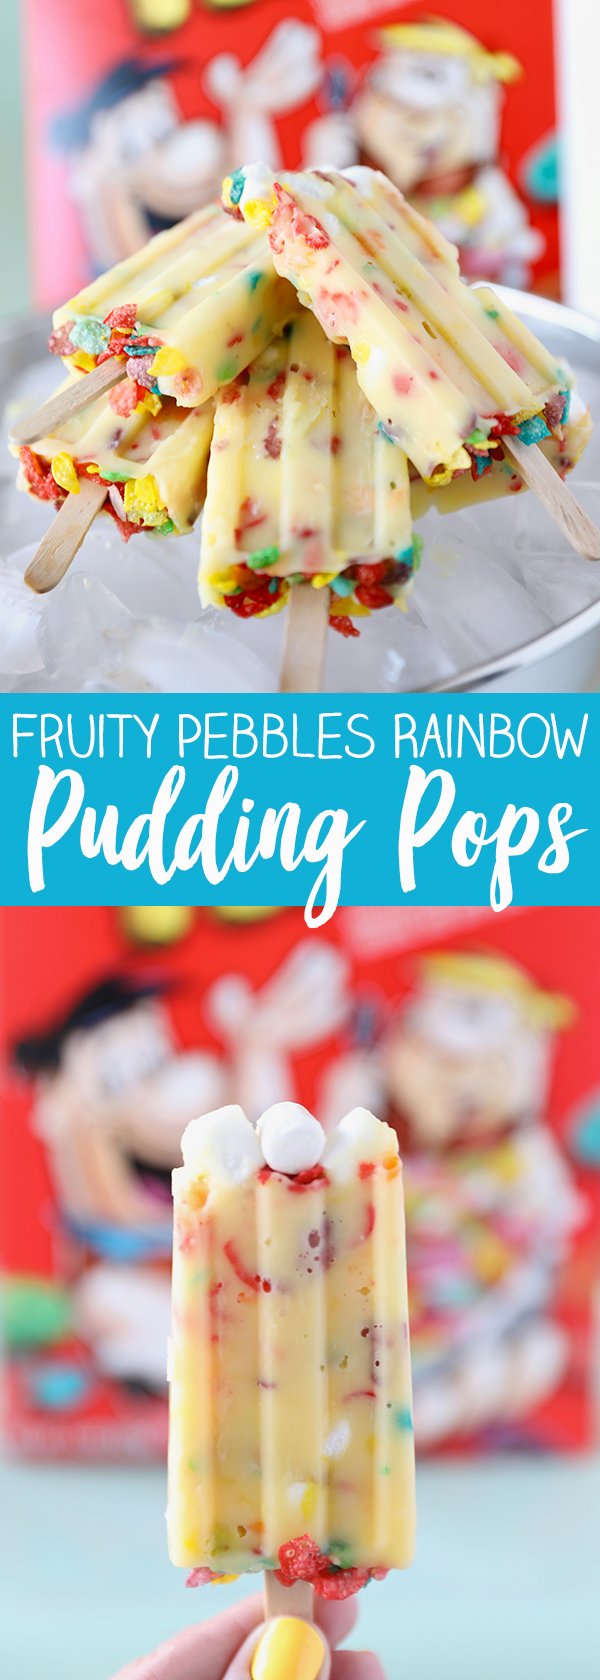 Fruity Pebbles Rainbow Pudding Pops